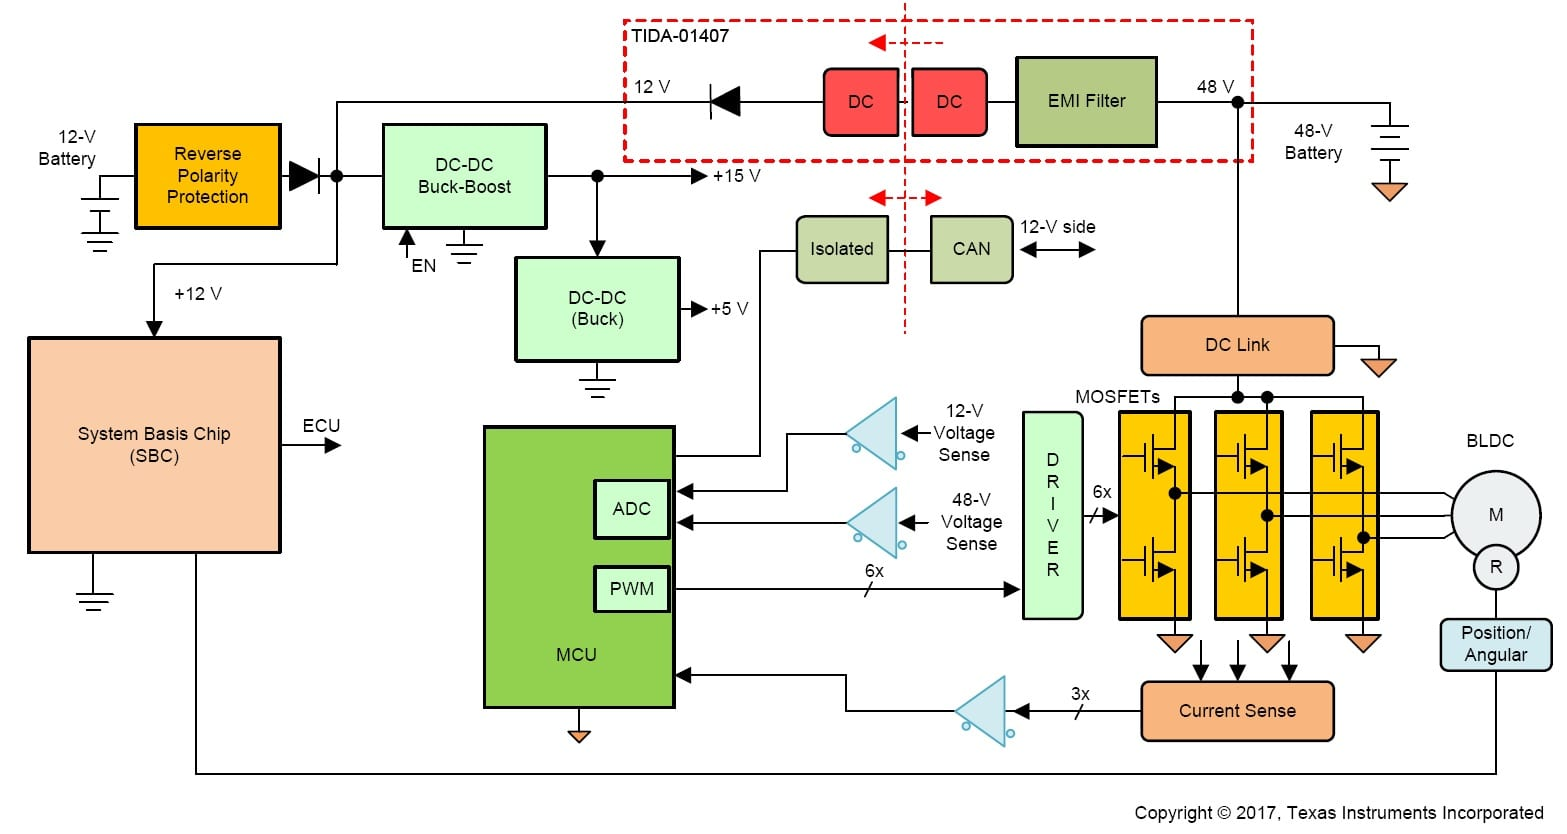 Automotive 400w 48 V Battery Input 12 Output Reference Design Low Ripple Regulated Power Supply Circuit Diagram This Tida 01407 From Texas Instruments Is A Dc That Generates 12vdc Rail The 48vdc Car In Mild